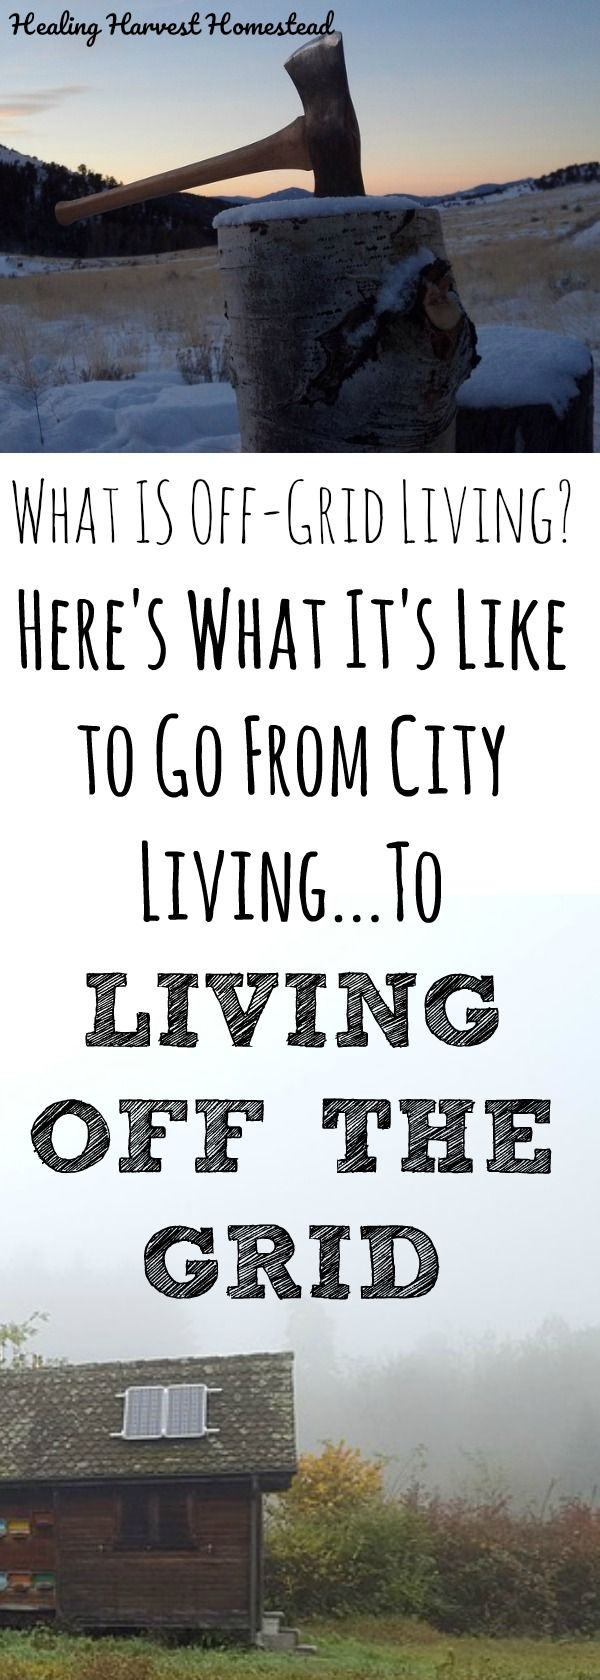 """What is it REALLY like to live off grid? And what, actually does living """"off-grid"""" mean? Find out about the challenges and joys of moving from city living to being off the grid---- #OffGrid #LivingOffGrid"""